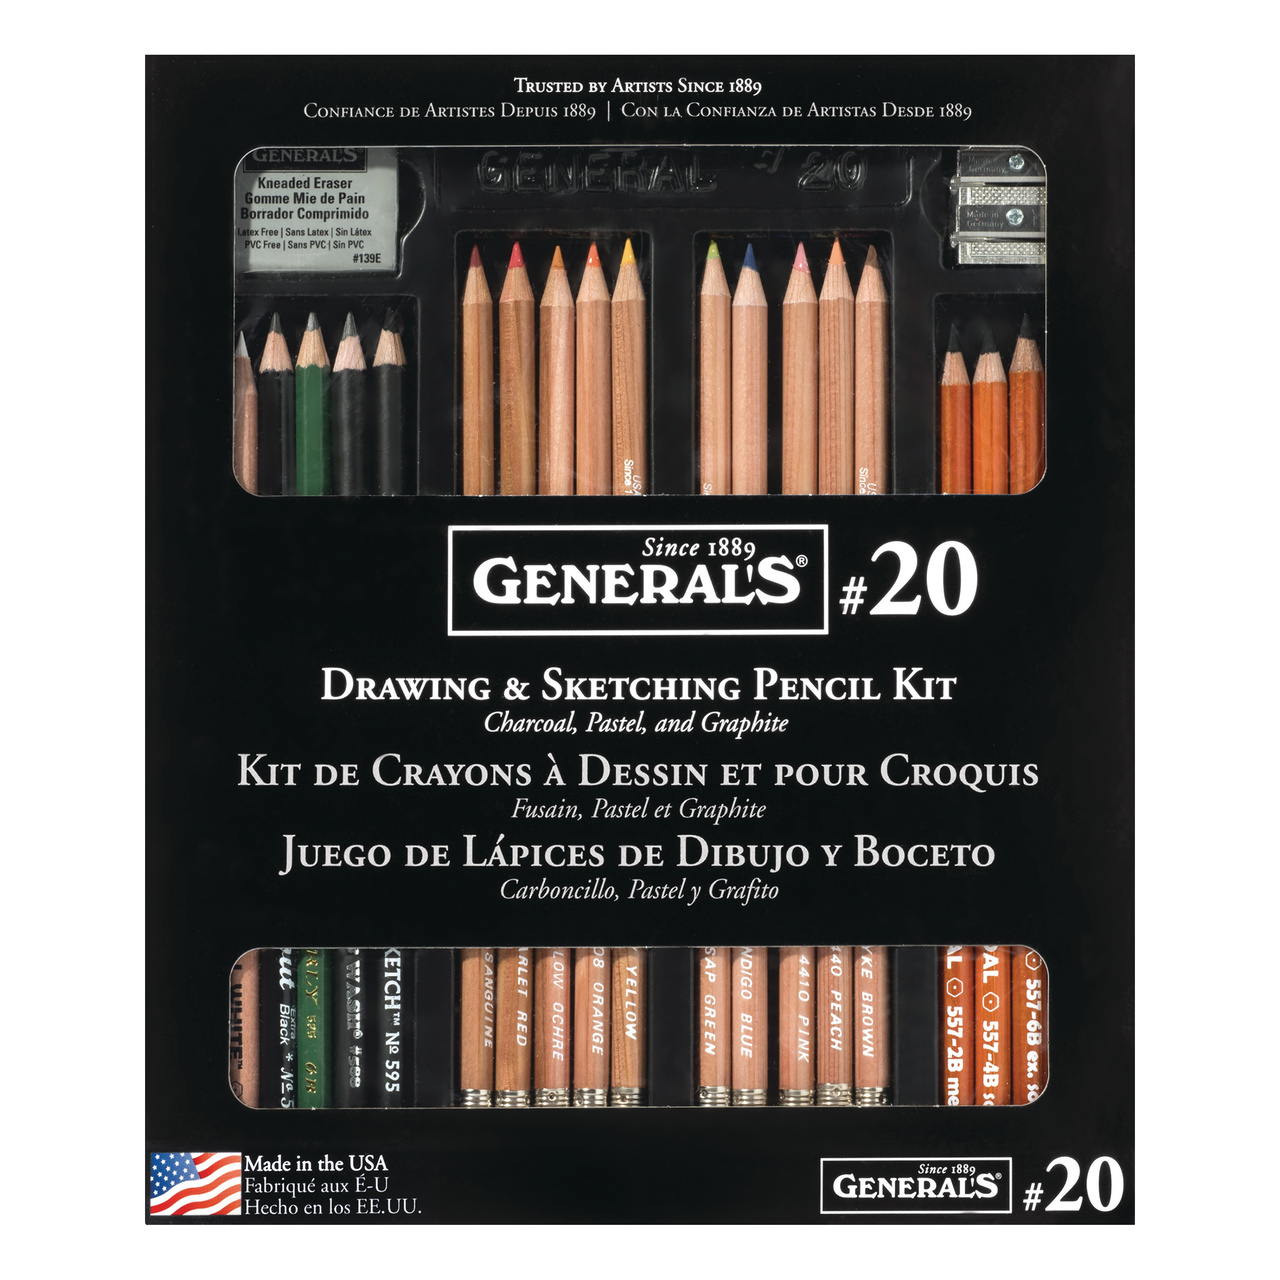 General Pencil Drawing & Sketching Pencil Kit No. 20